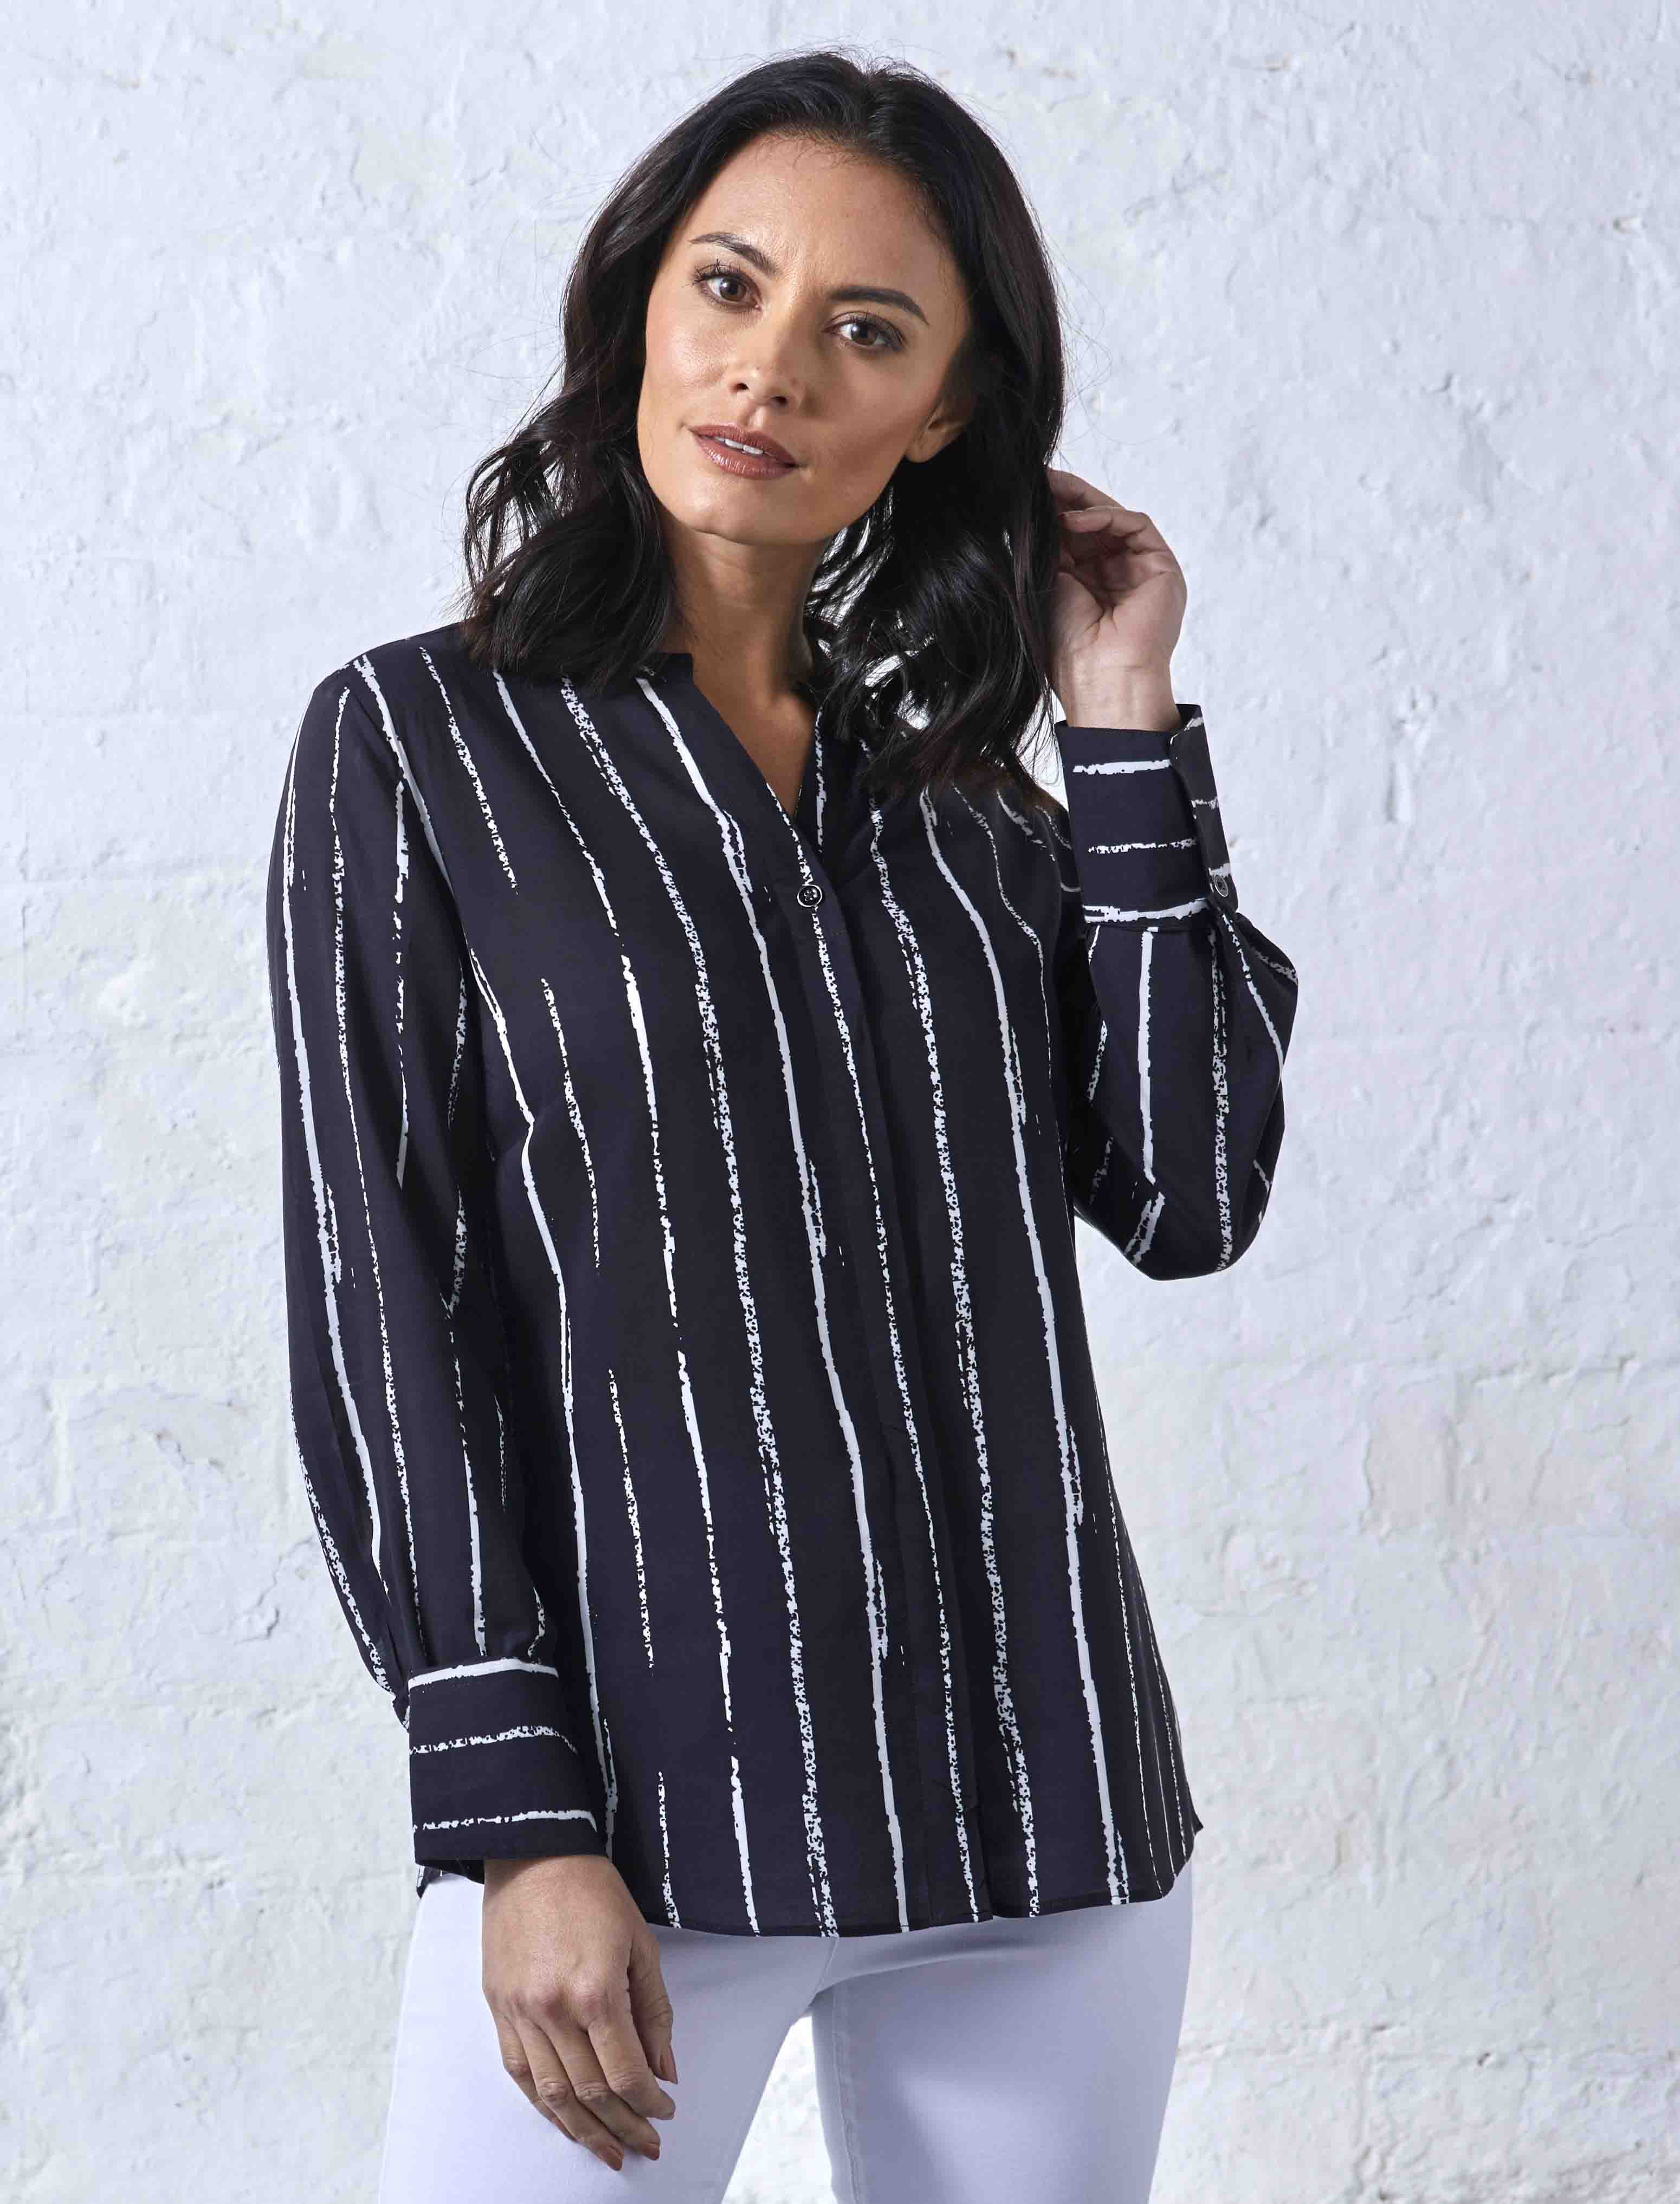 Double TWO Women's Work Shirts and Blouses